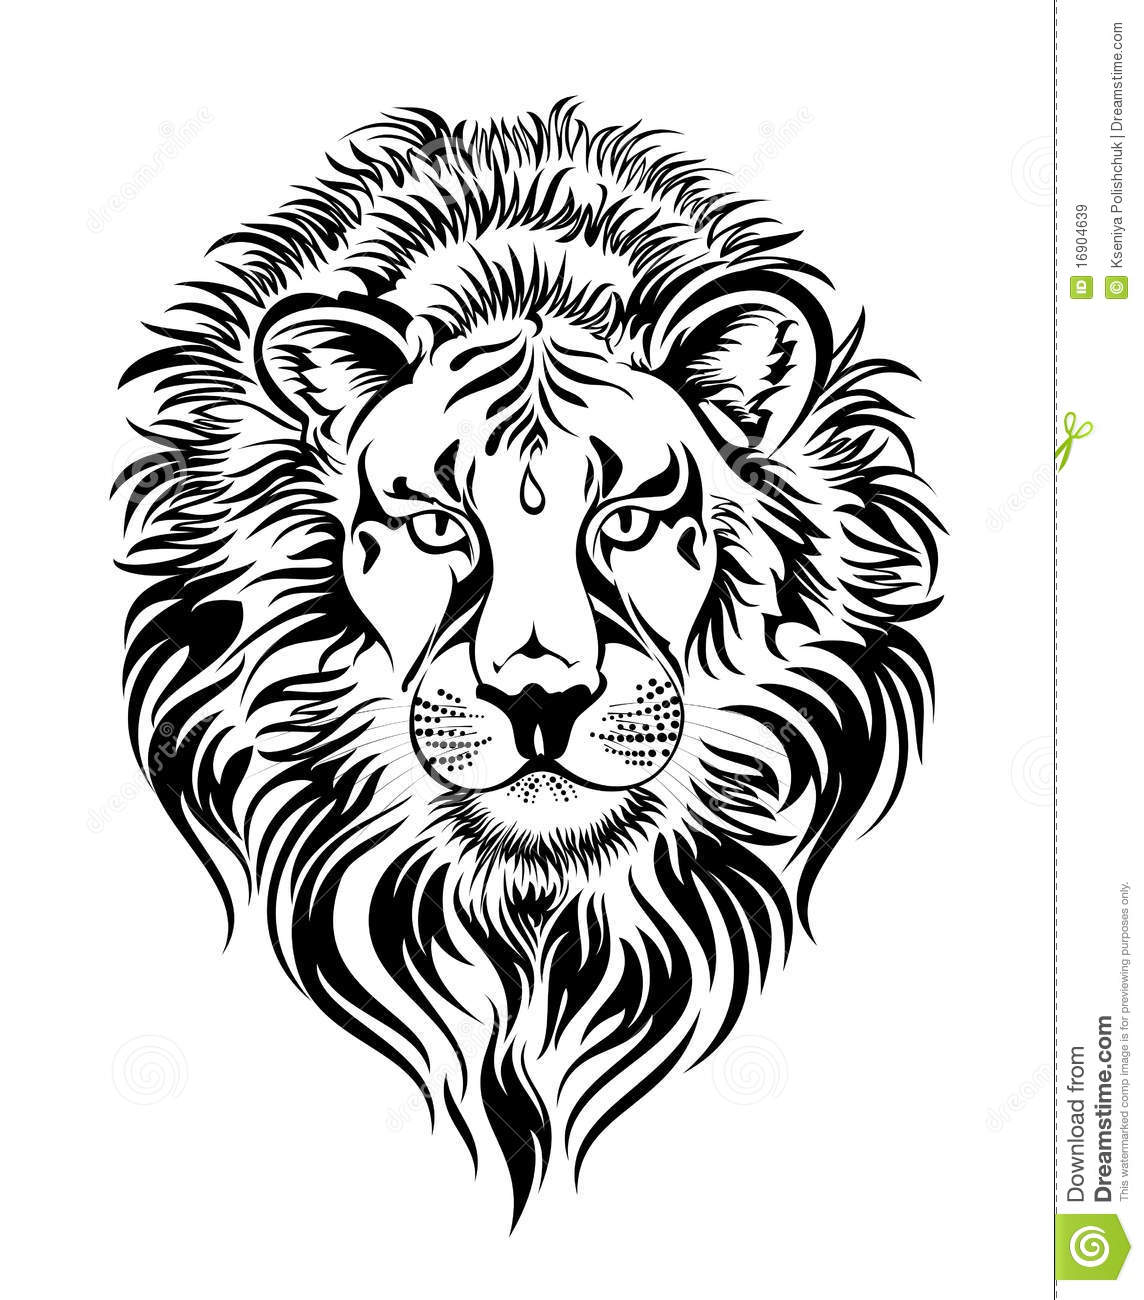 Leo.Tattoo Design Stock Vector